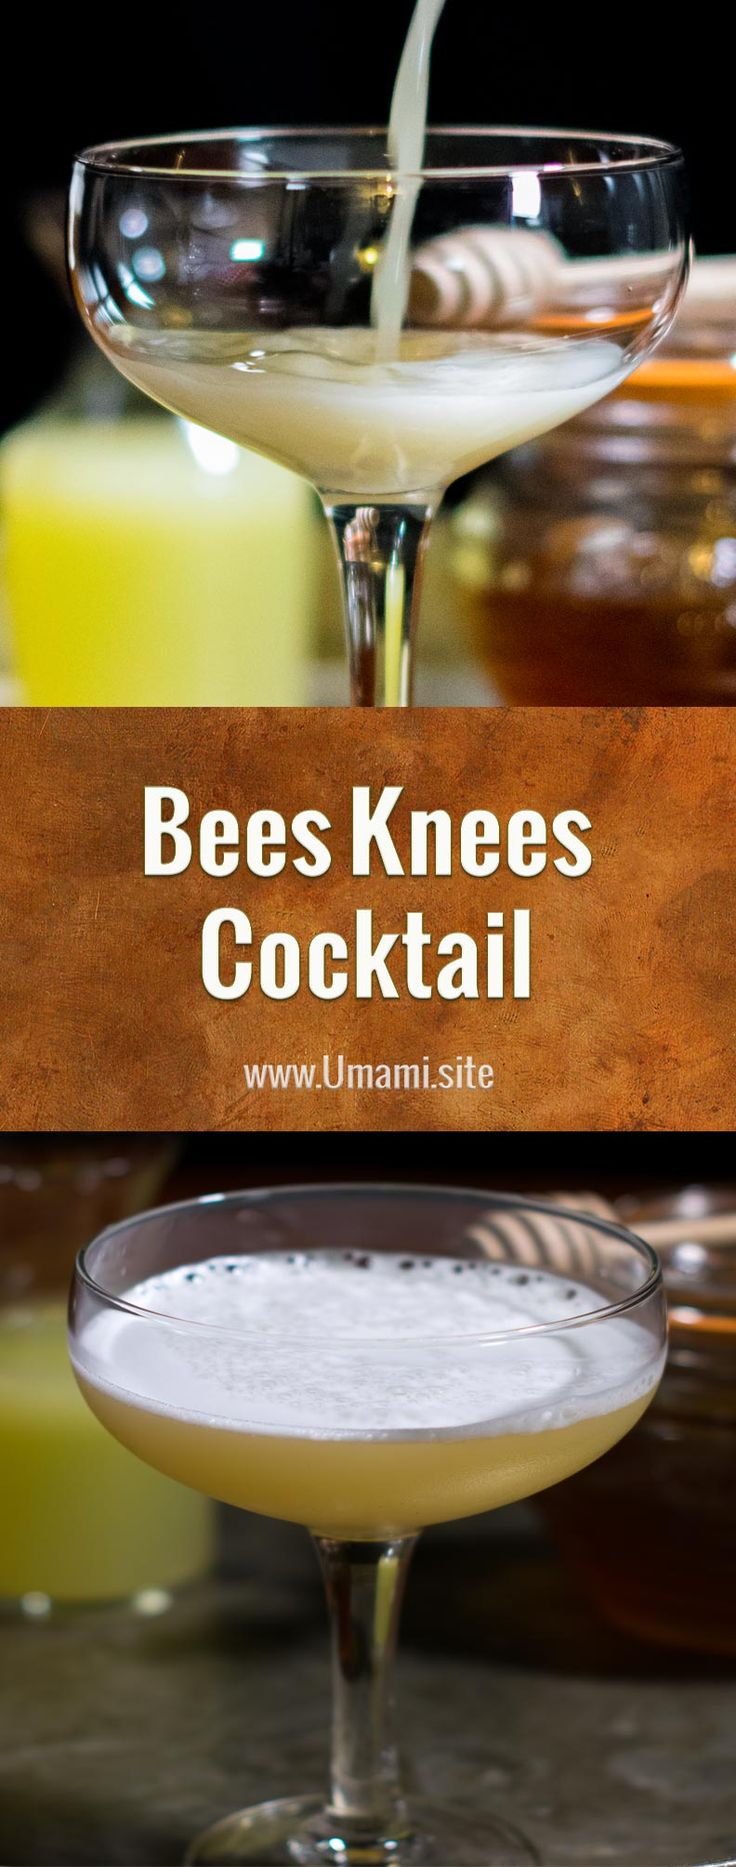 The Bees Knees is a traditional summer cocktail recipe made with gin, lemon juice, and a honey simple syrup that lives up to its name with warm honey flavors and a beautiful golden color.